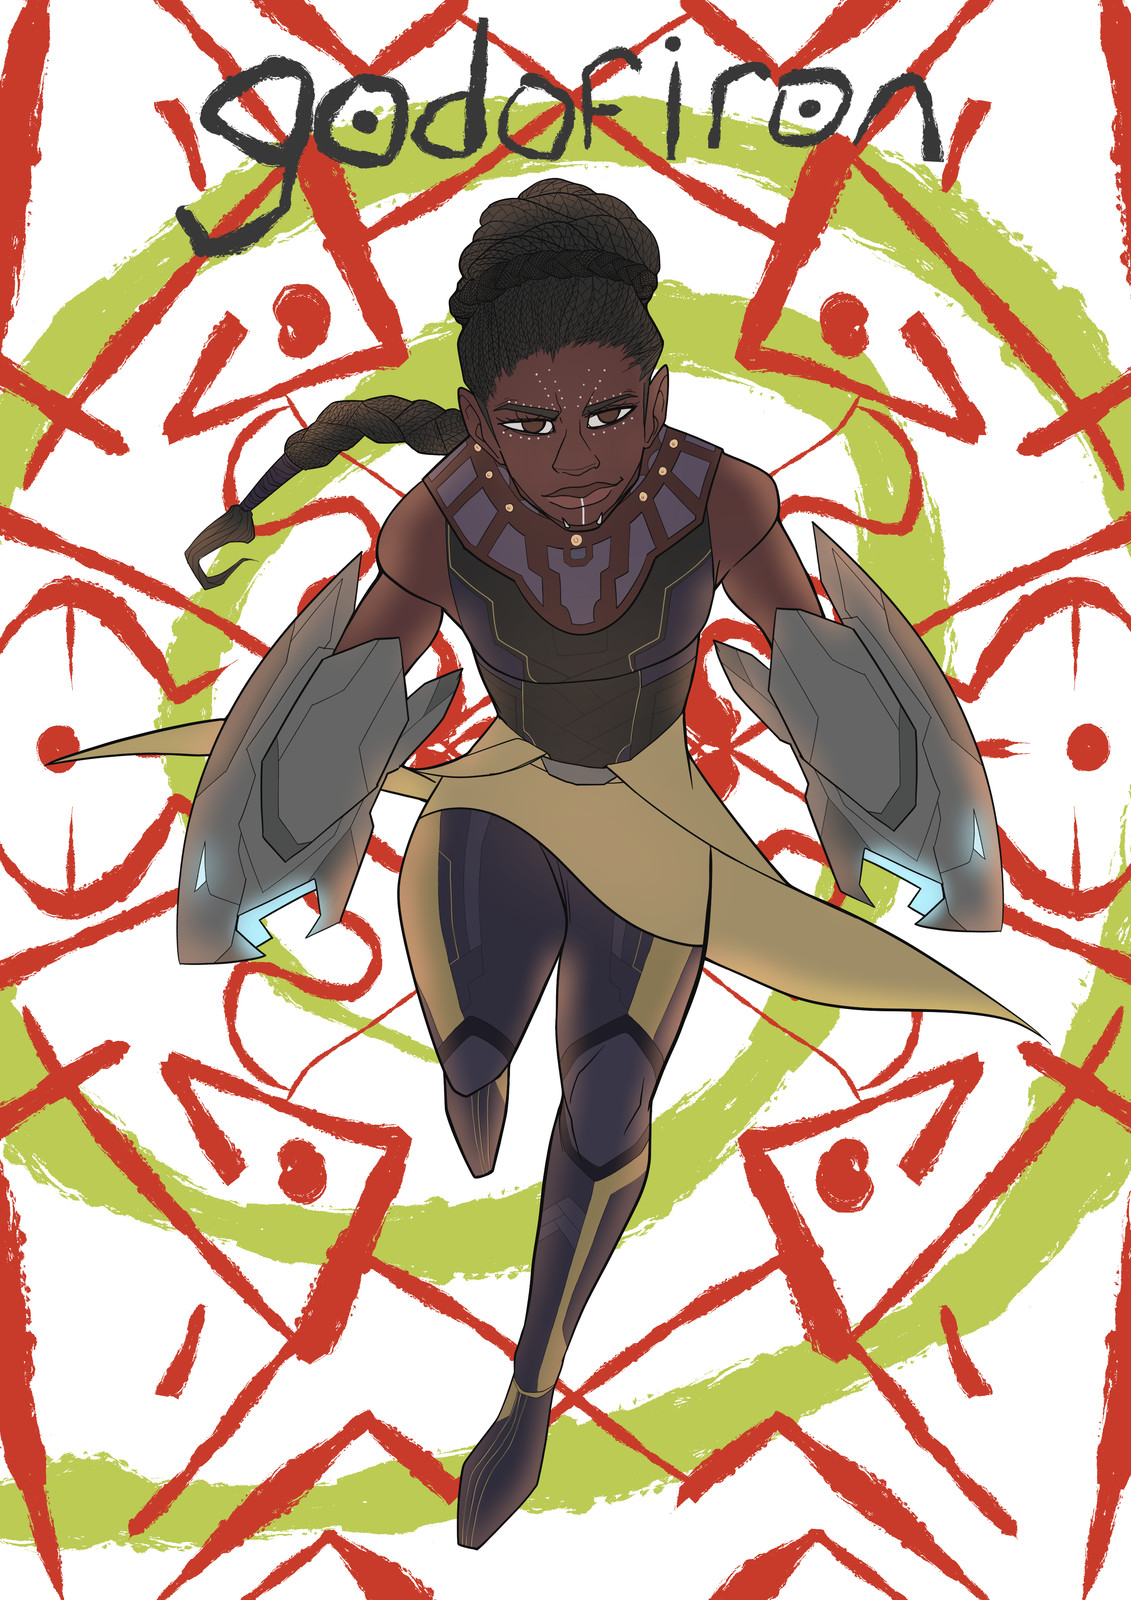 final illustration of my president, princess Shuri, overwhelming genius and sister to the black panther!